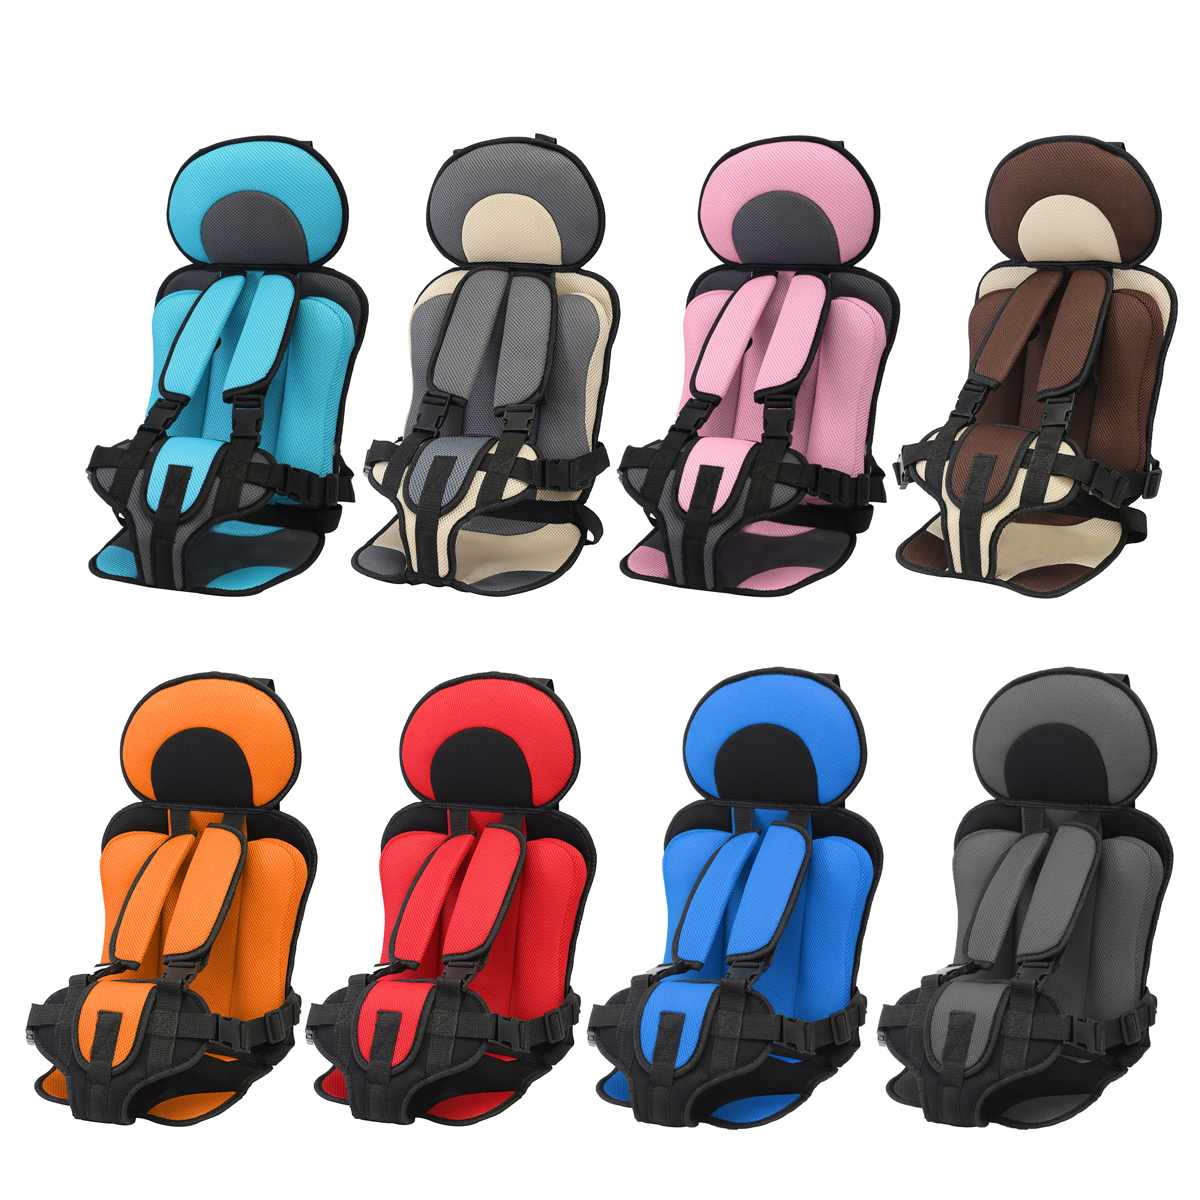 3~12 year old kids Seat Portable Baby Seat Children's Chairs Updated Version Thickening Sponge Kids Child Car Seats